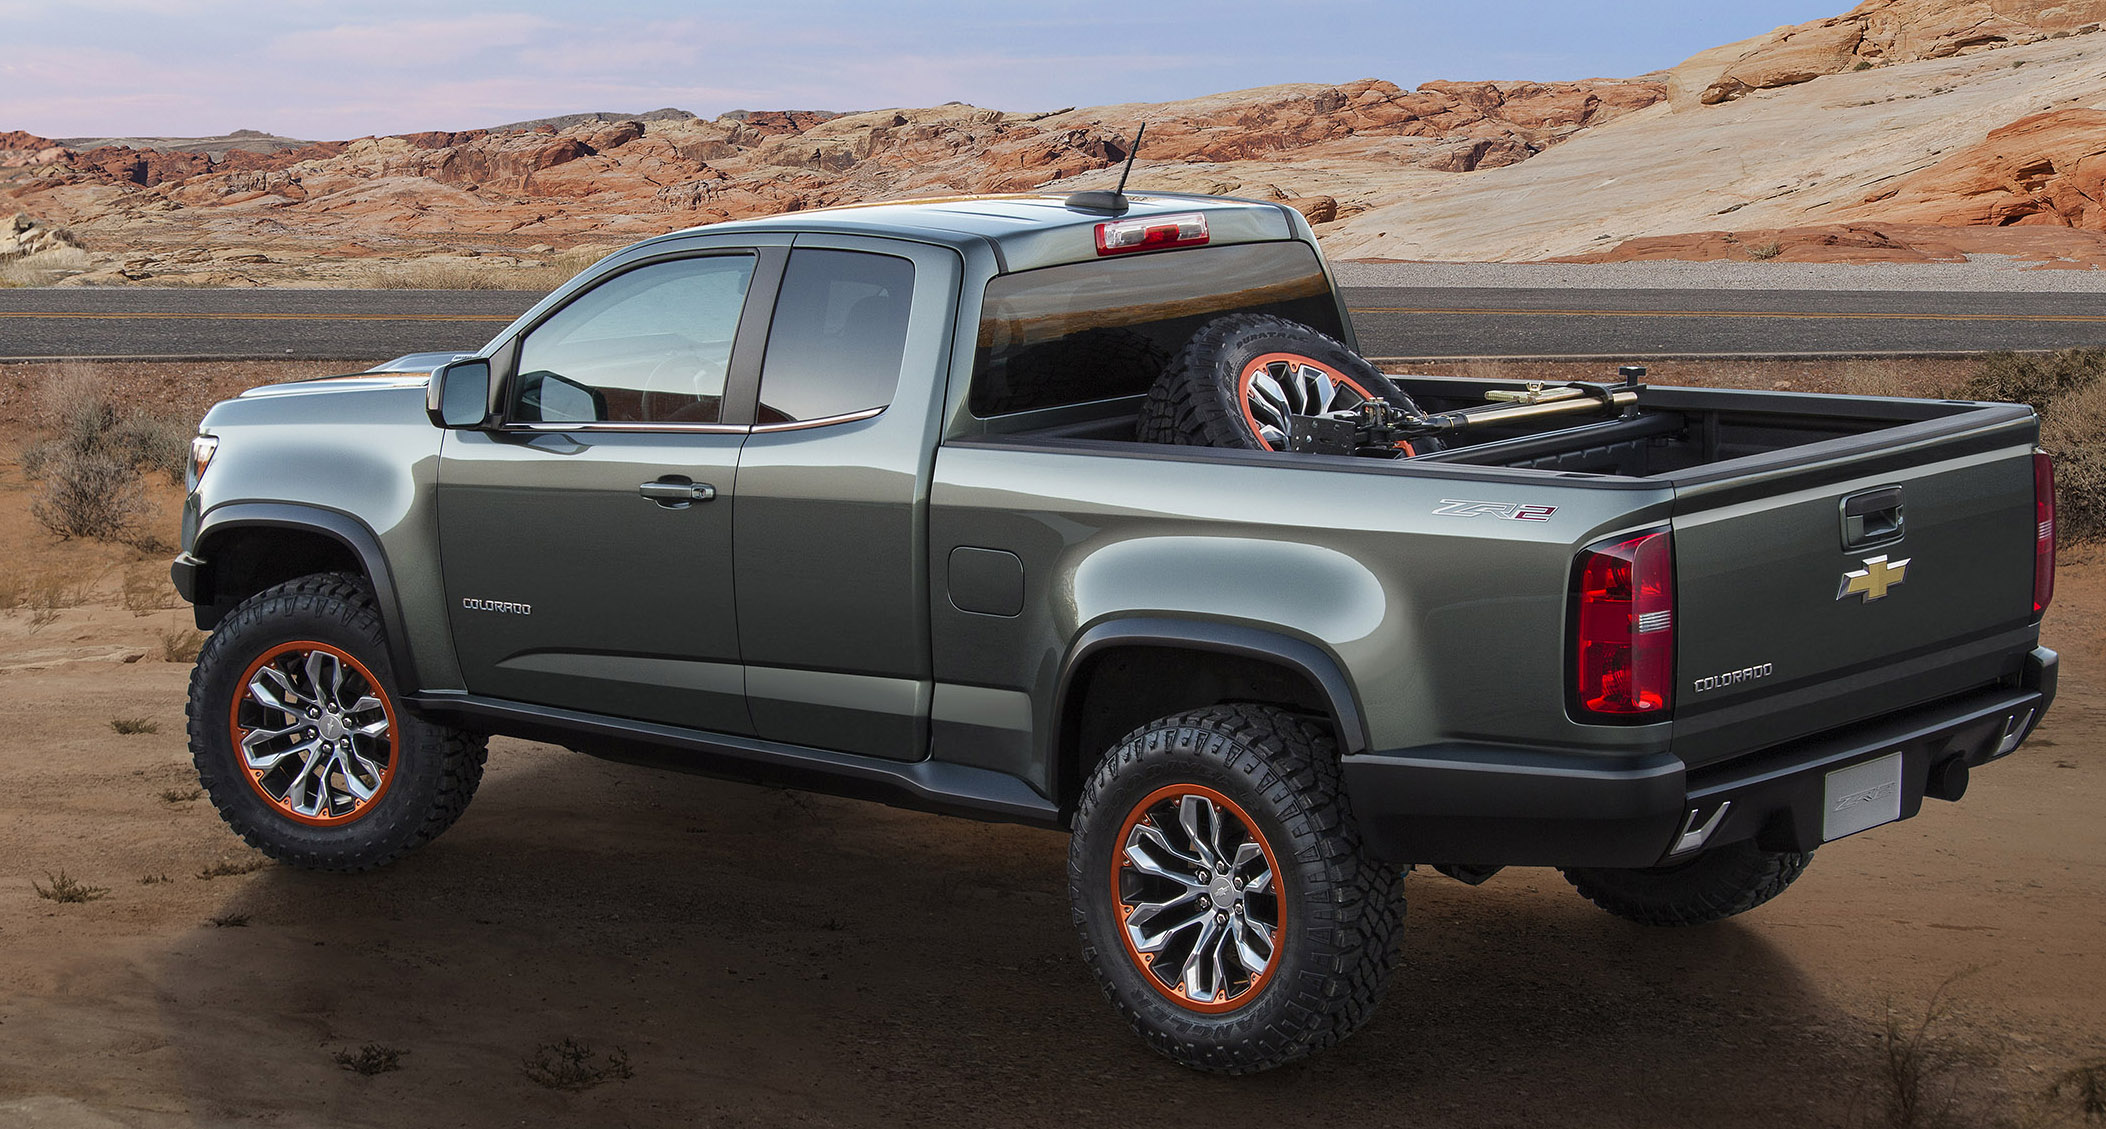 Chevrolet Colorado Zr2 Concept Featuring The 2 8l Duramax Turbo Sel Taking Off